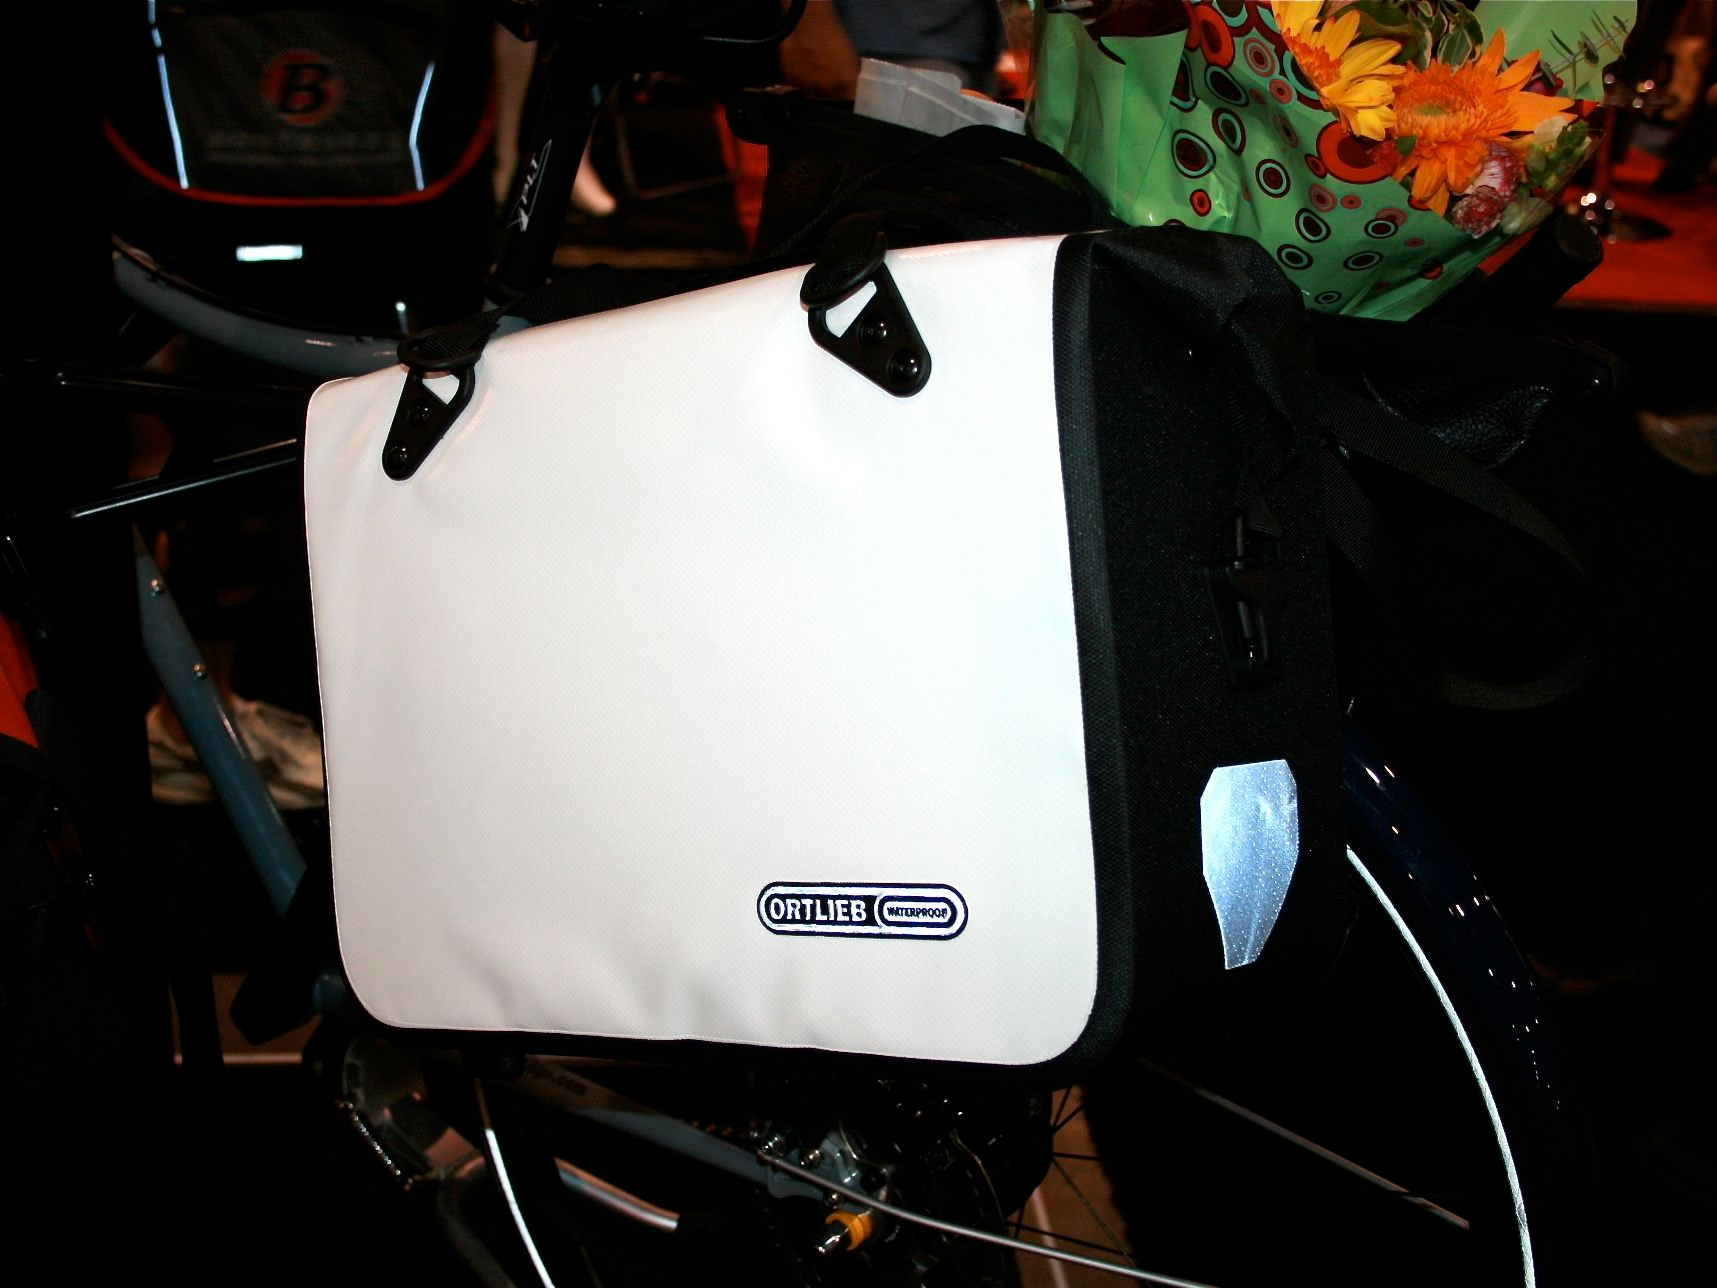 German maker Ortlieb knows how to keep your laptop and other ofice goodies safe and dry.